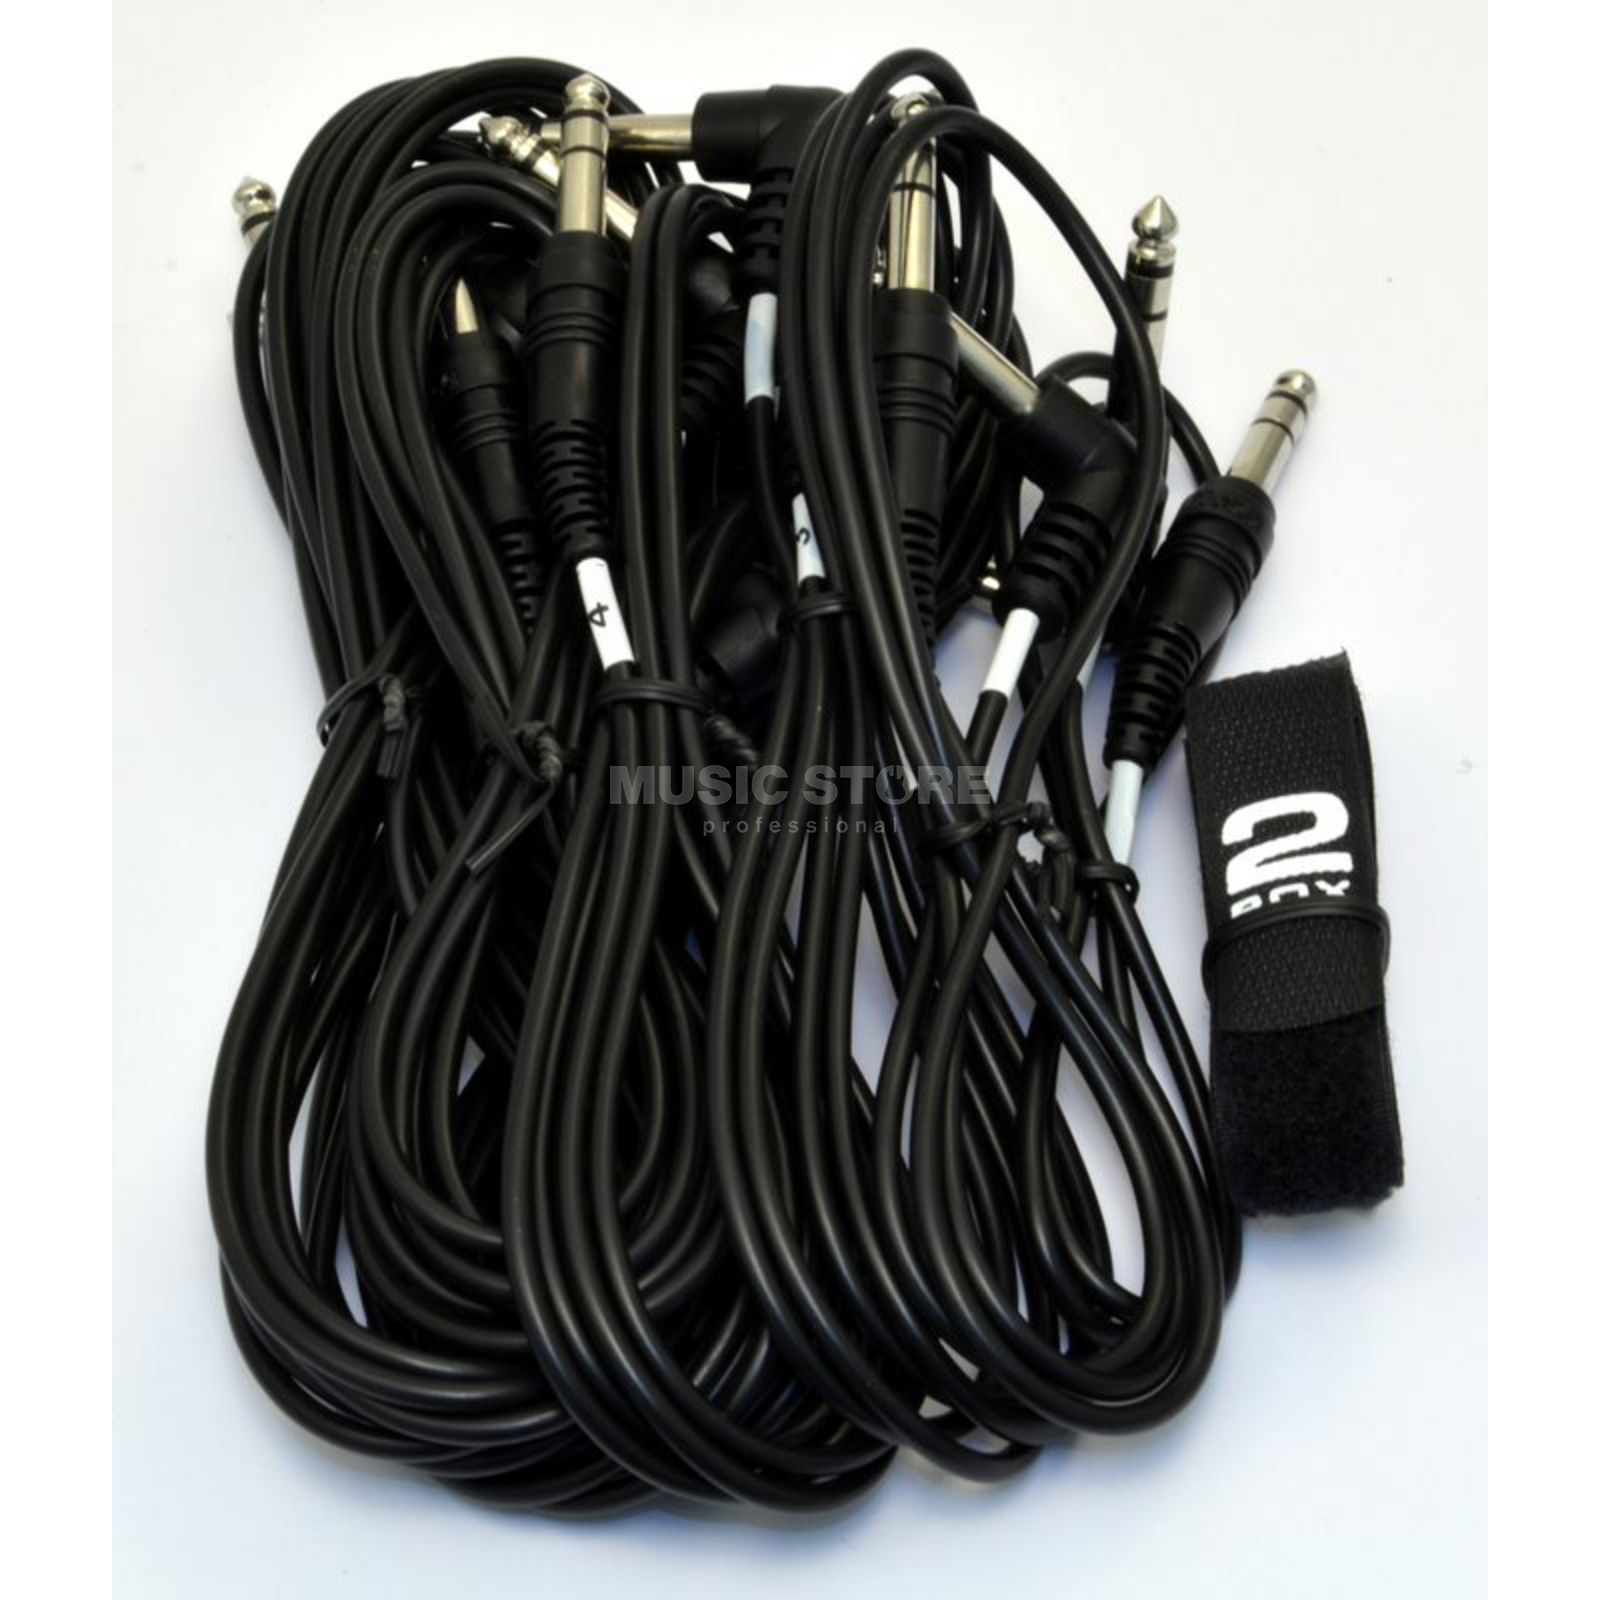 2Box Cable Set x8 Product Image